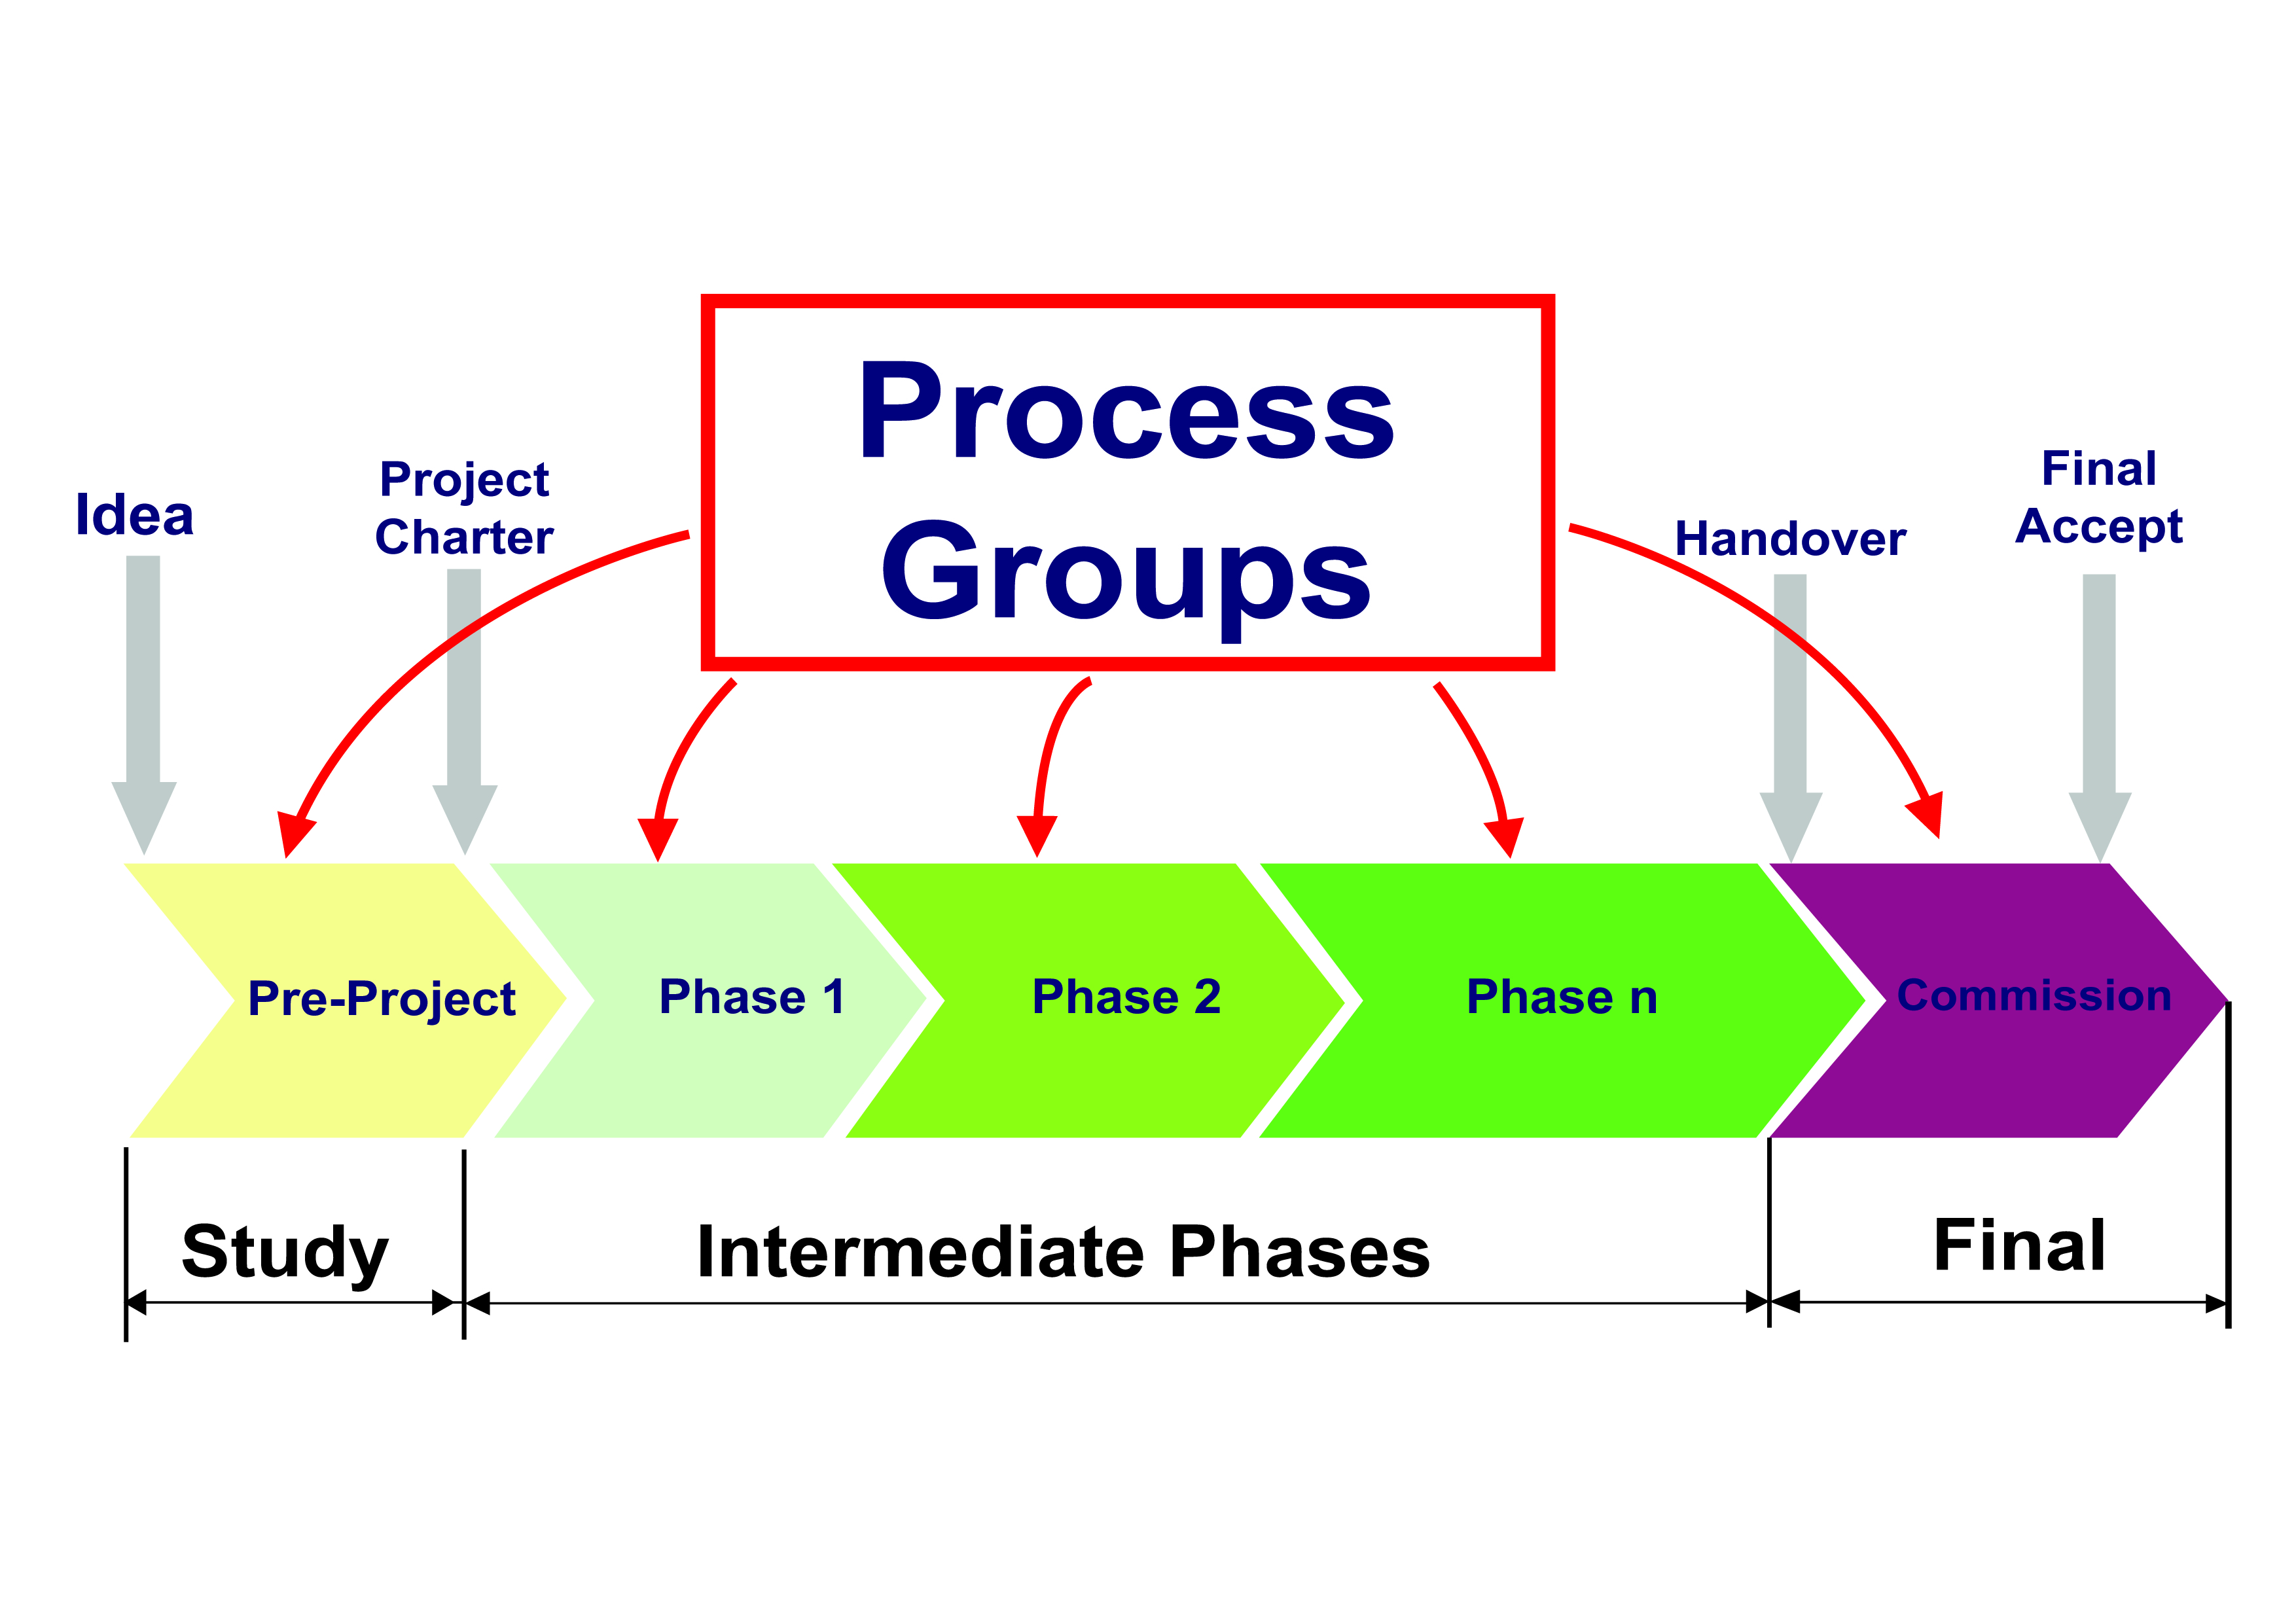 pmi process groups diagram middle passage slave ship what is the difference between project life cycle and